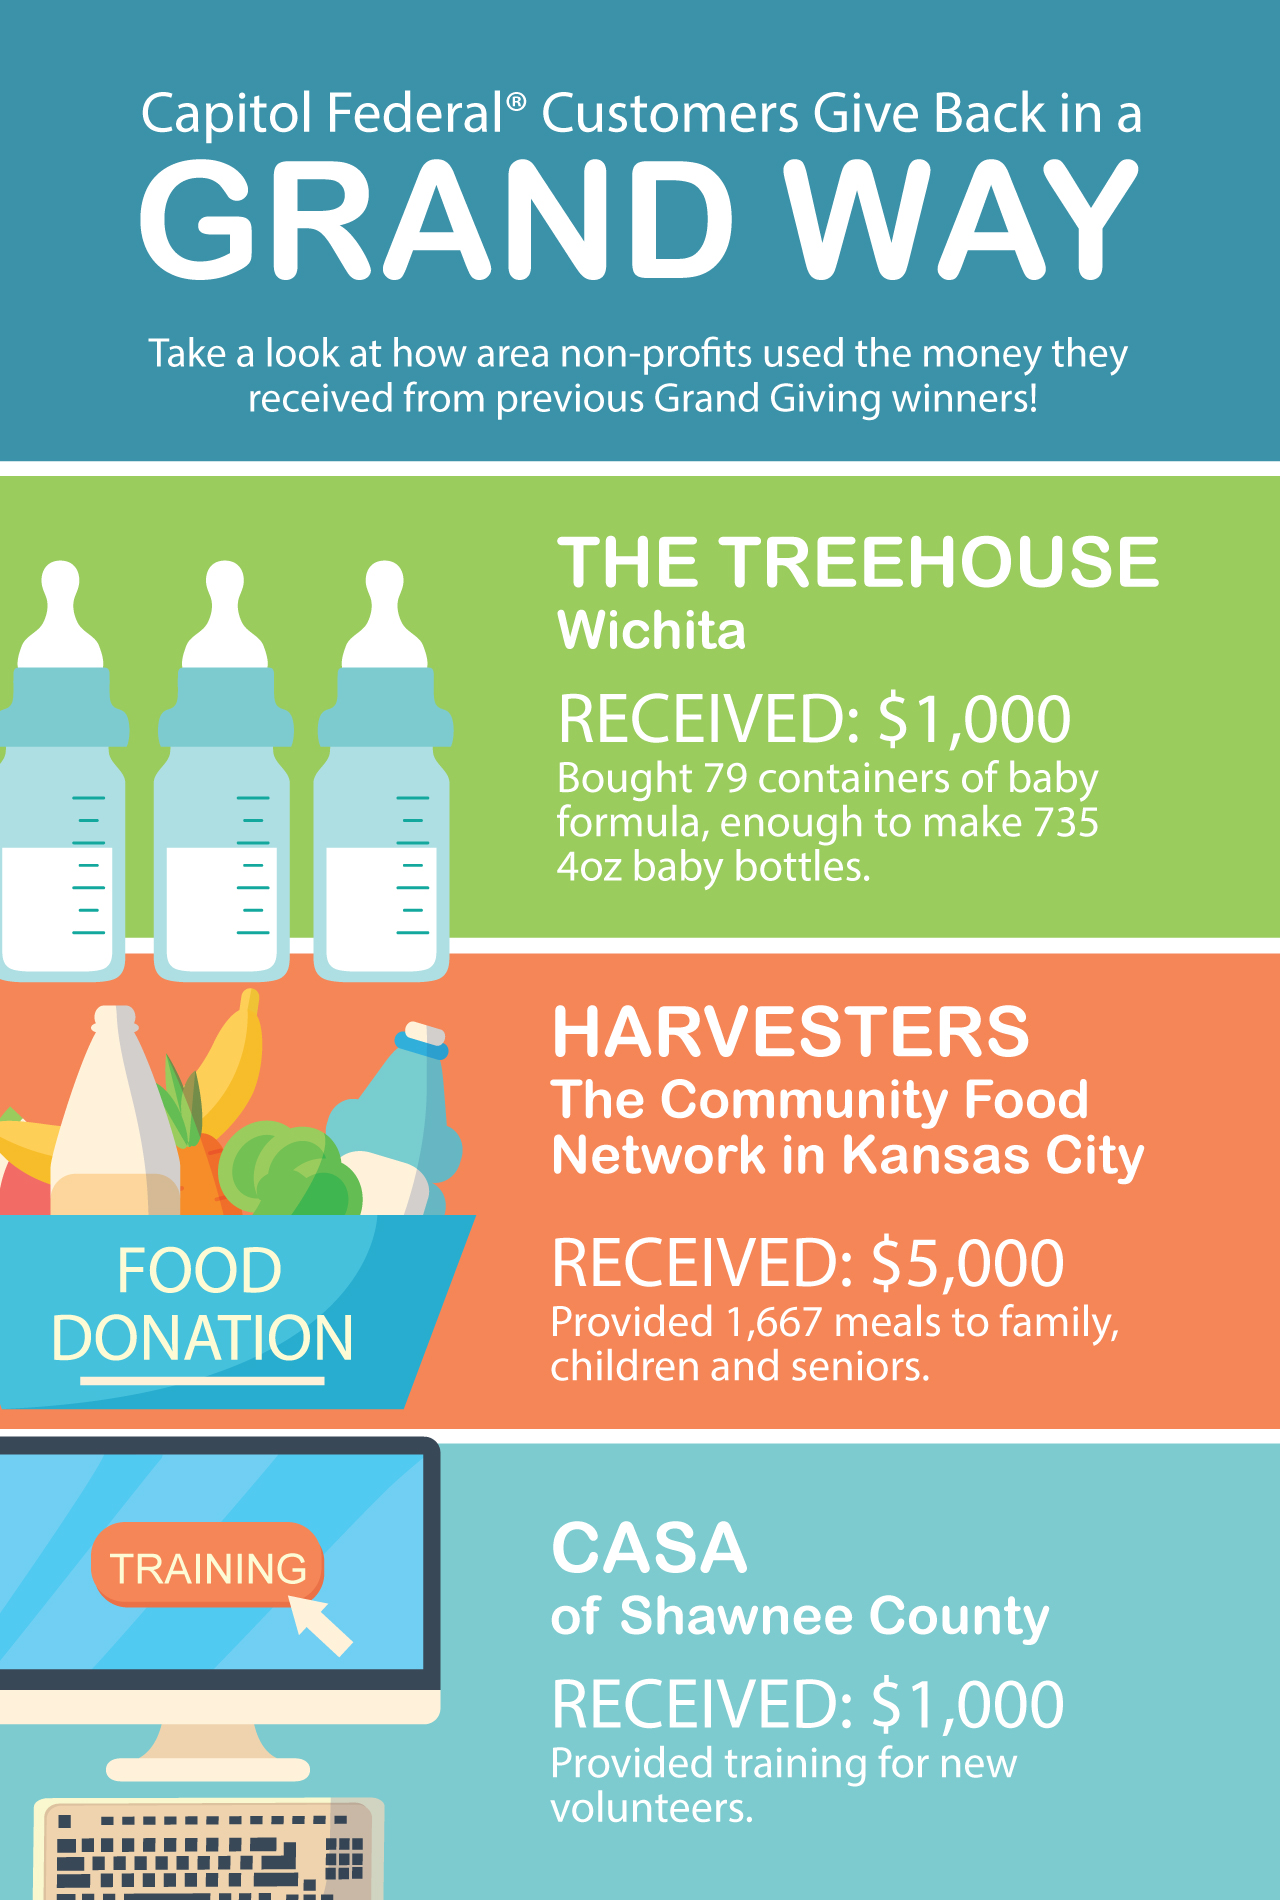 CapFed Customers Give Back Infographic